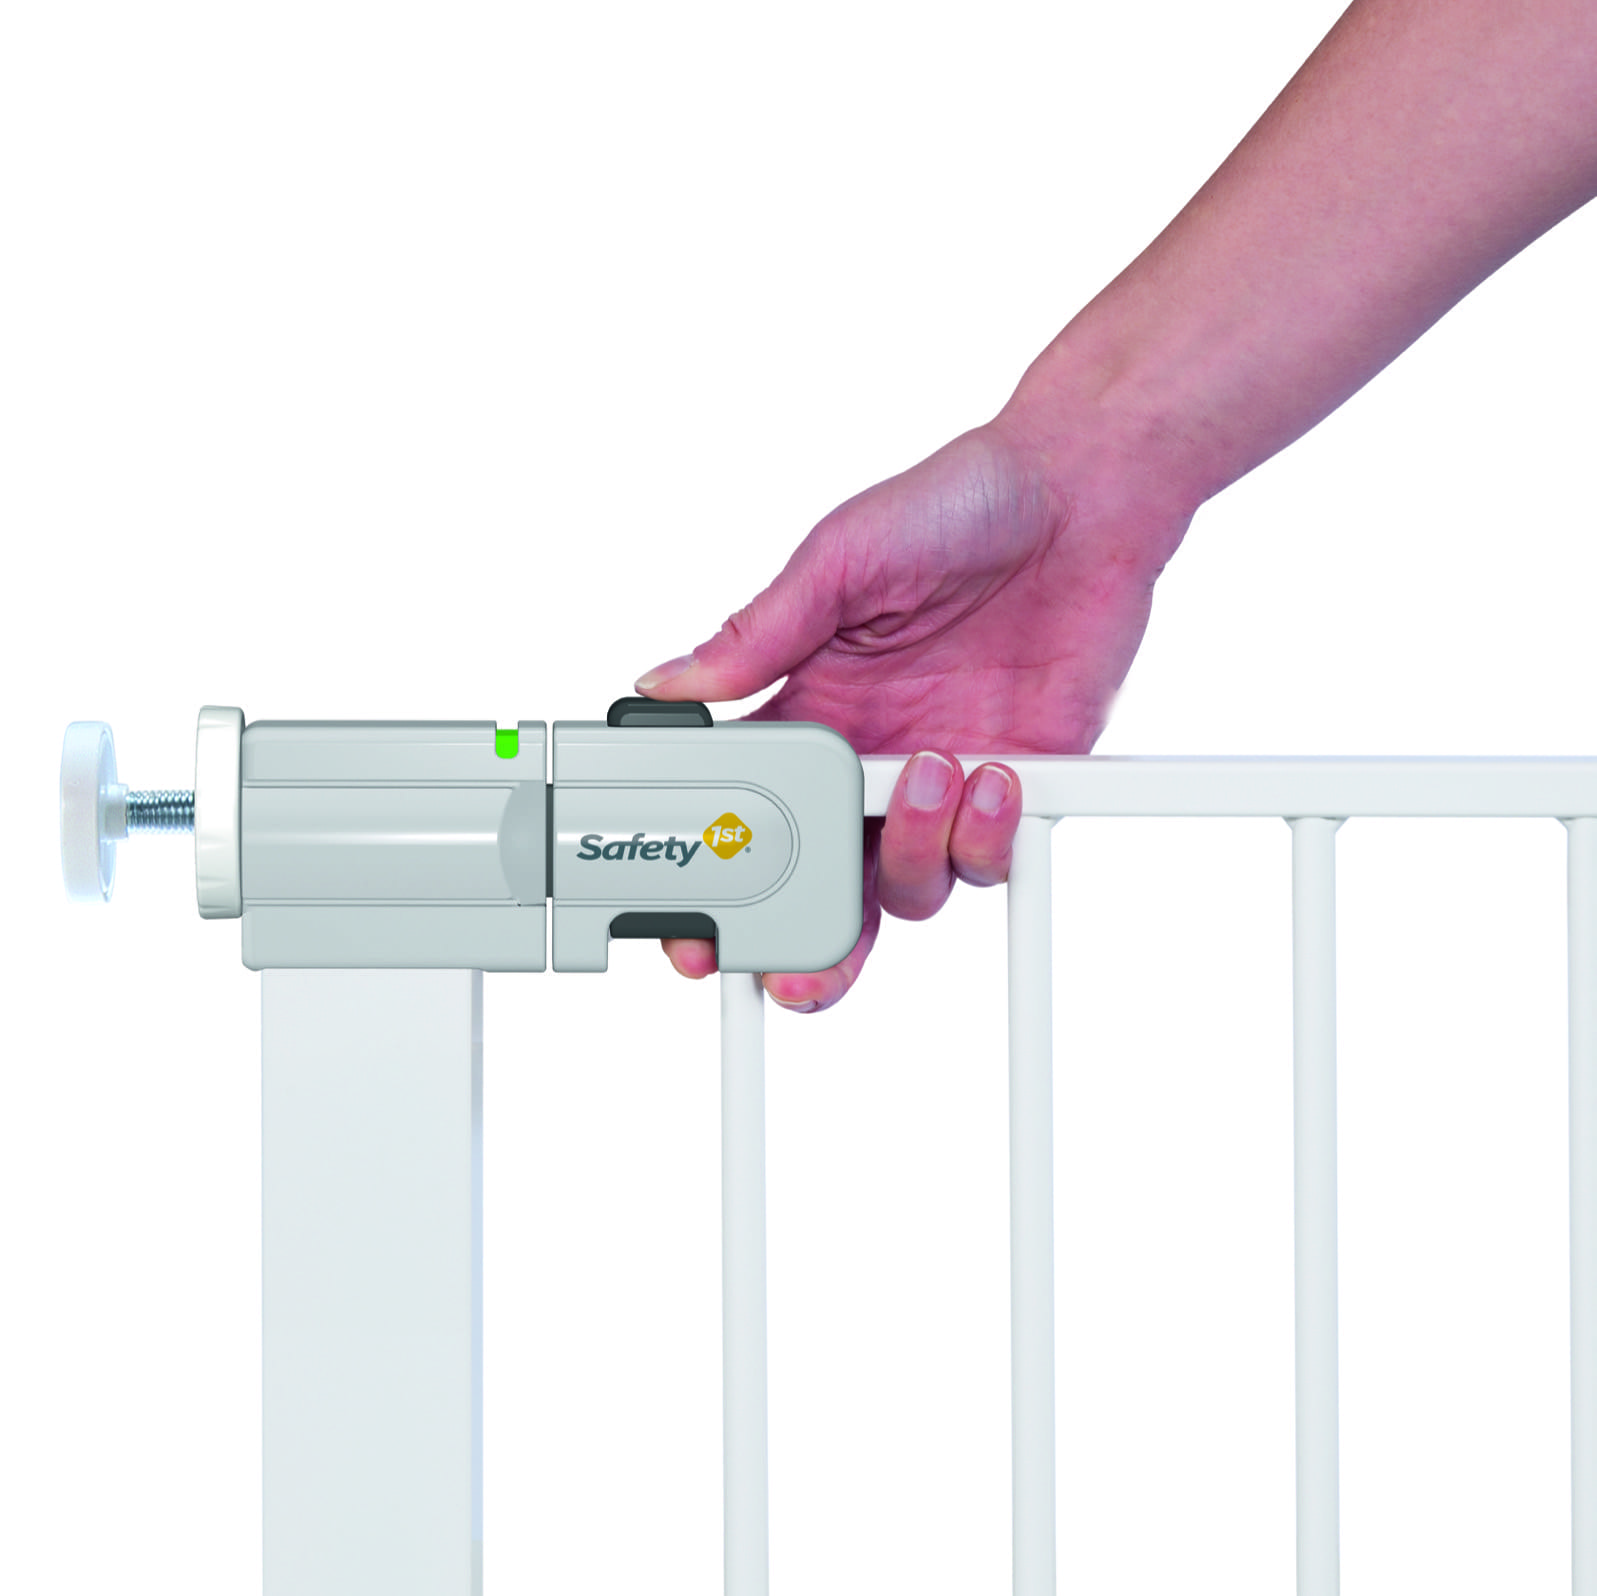 Safety 1st SecurTech® Auto Close Metal Gate product image